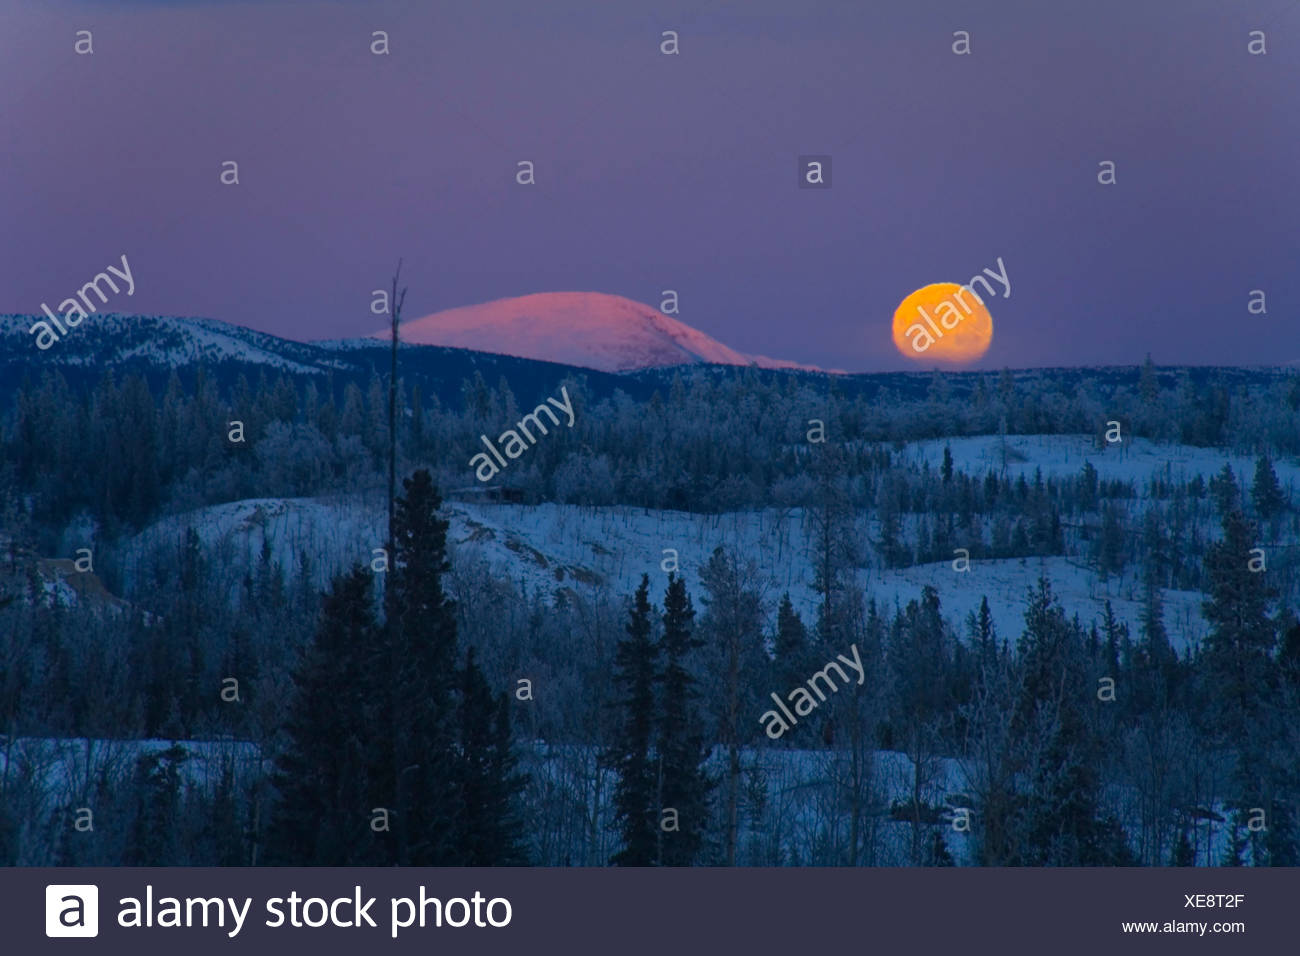 Moon rising over Takhini River valley, Ibex Mountains behind, Yukon Territory, Canada, North America - Stock Image